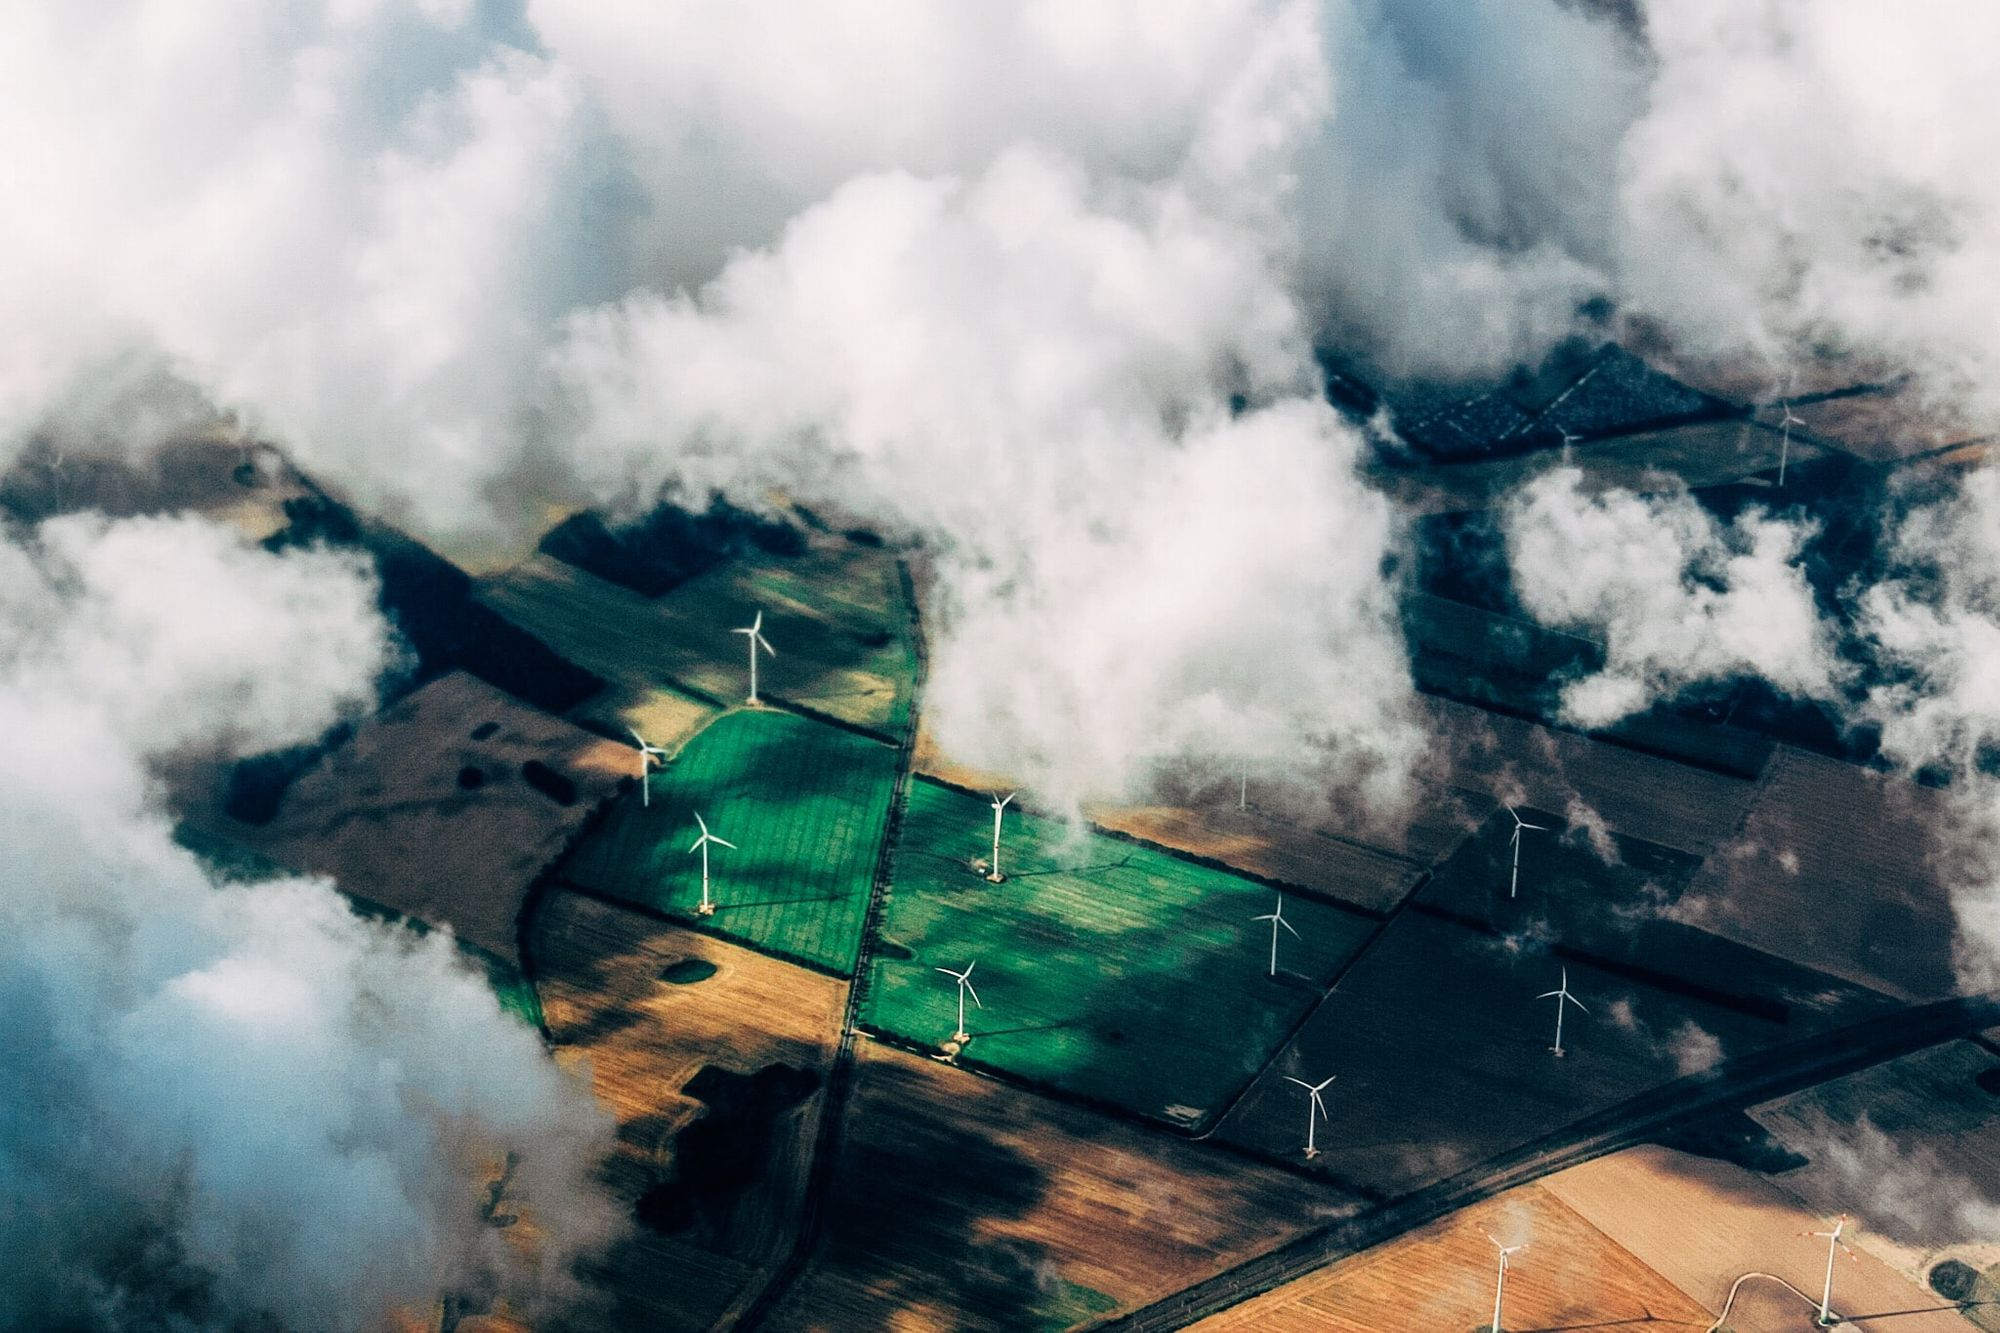 An aerial shot of wind turbines in fields, with fluffy clouds obscuring some of the view